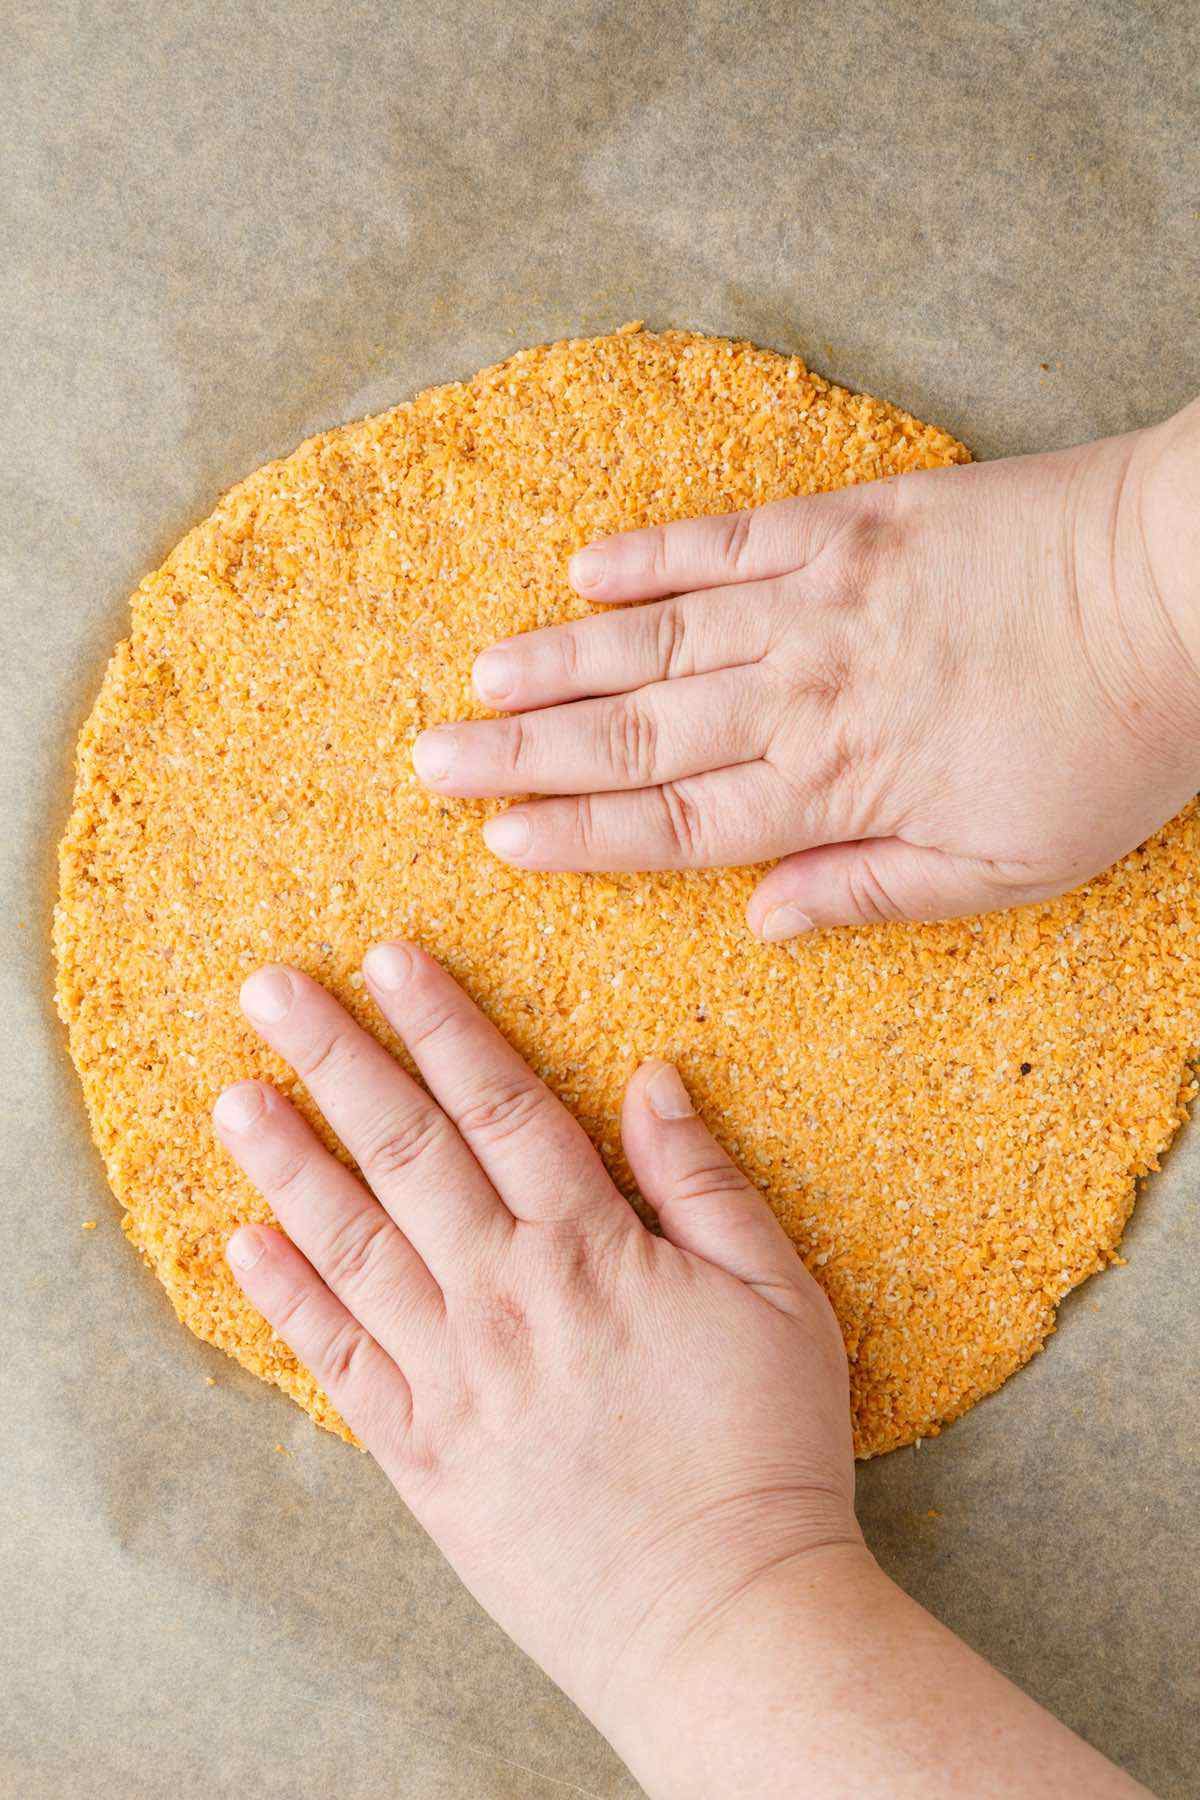 forming the sweet potato crust